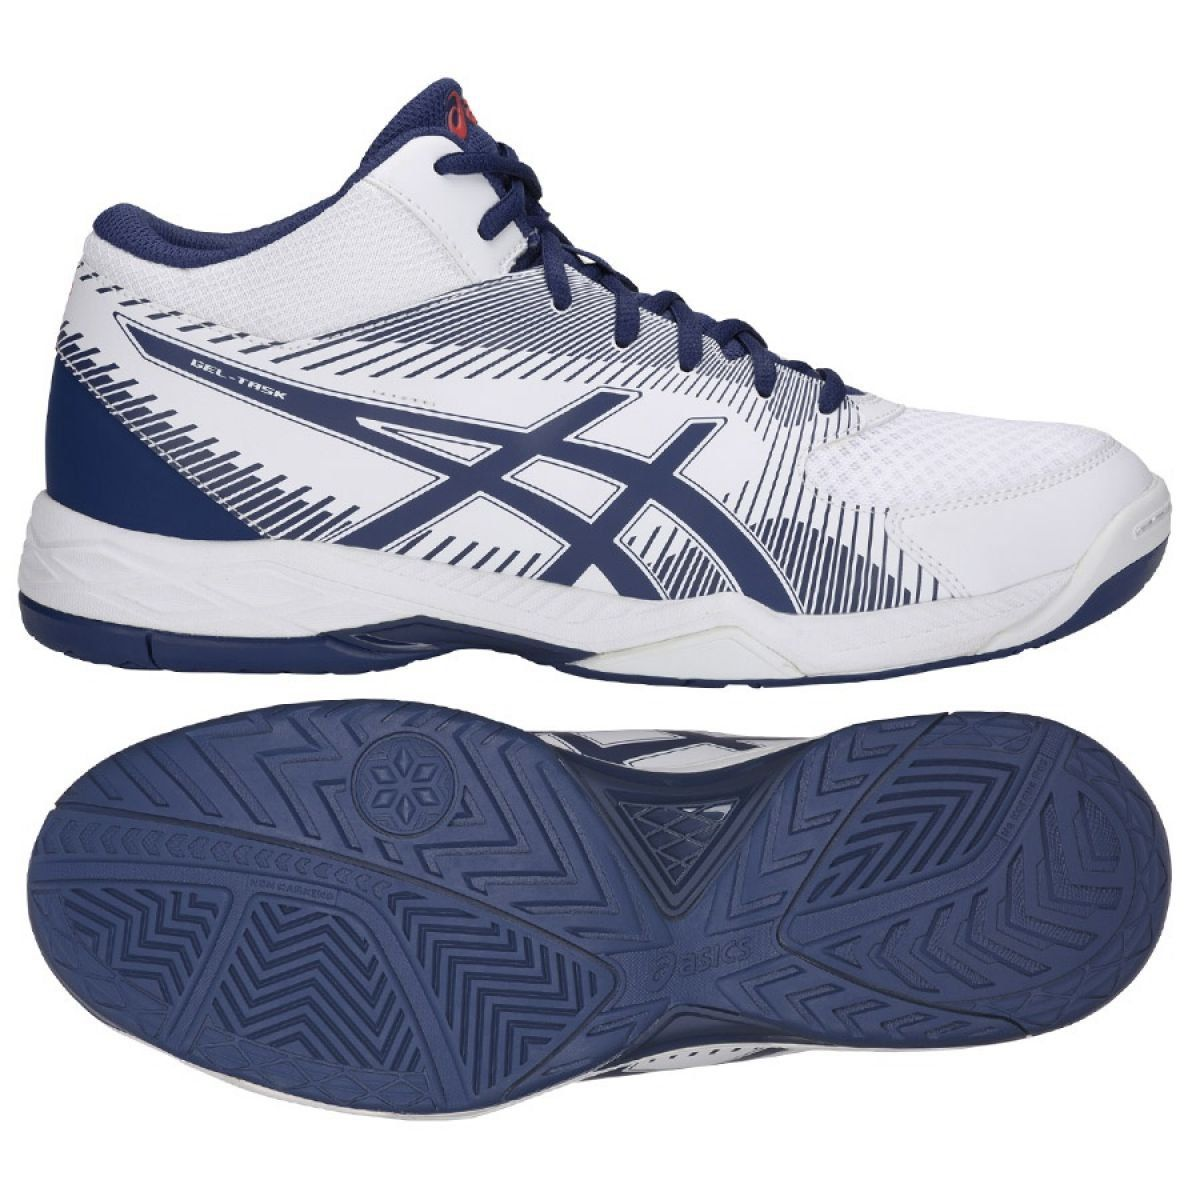 Asics Gel Task M B703y 100 Volleyball Shoes White White Volleyball Shoes Asics Shoes